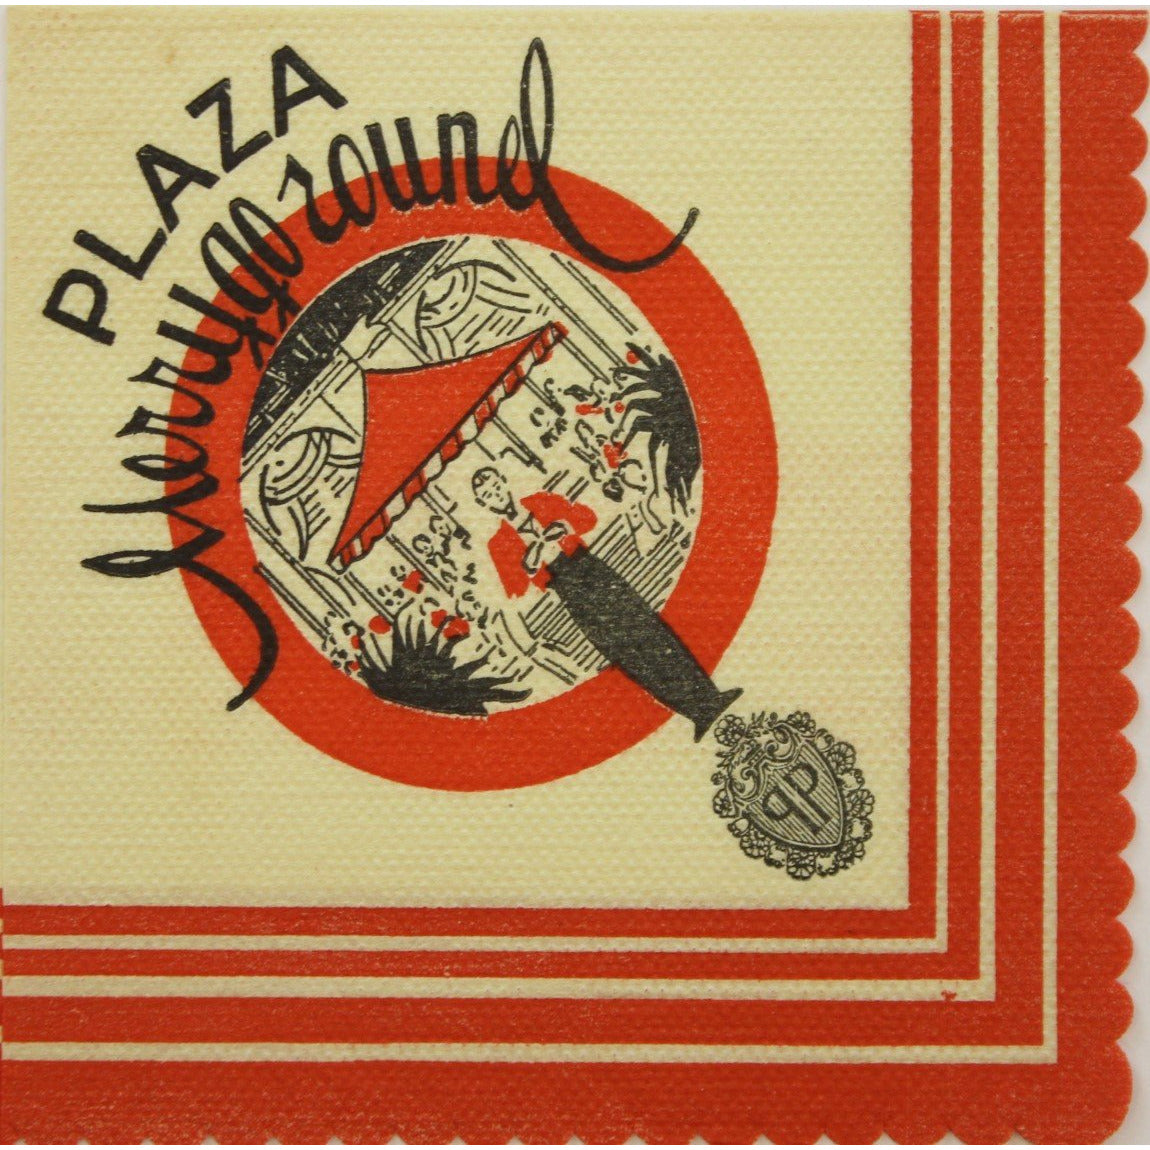 "The Plaza Hotel 'Merry Go Round"" Cocktail Napkin"